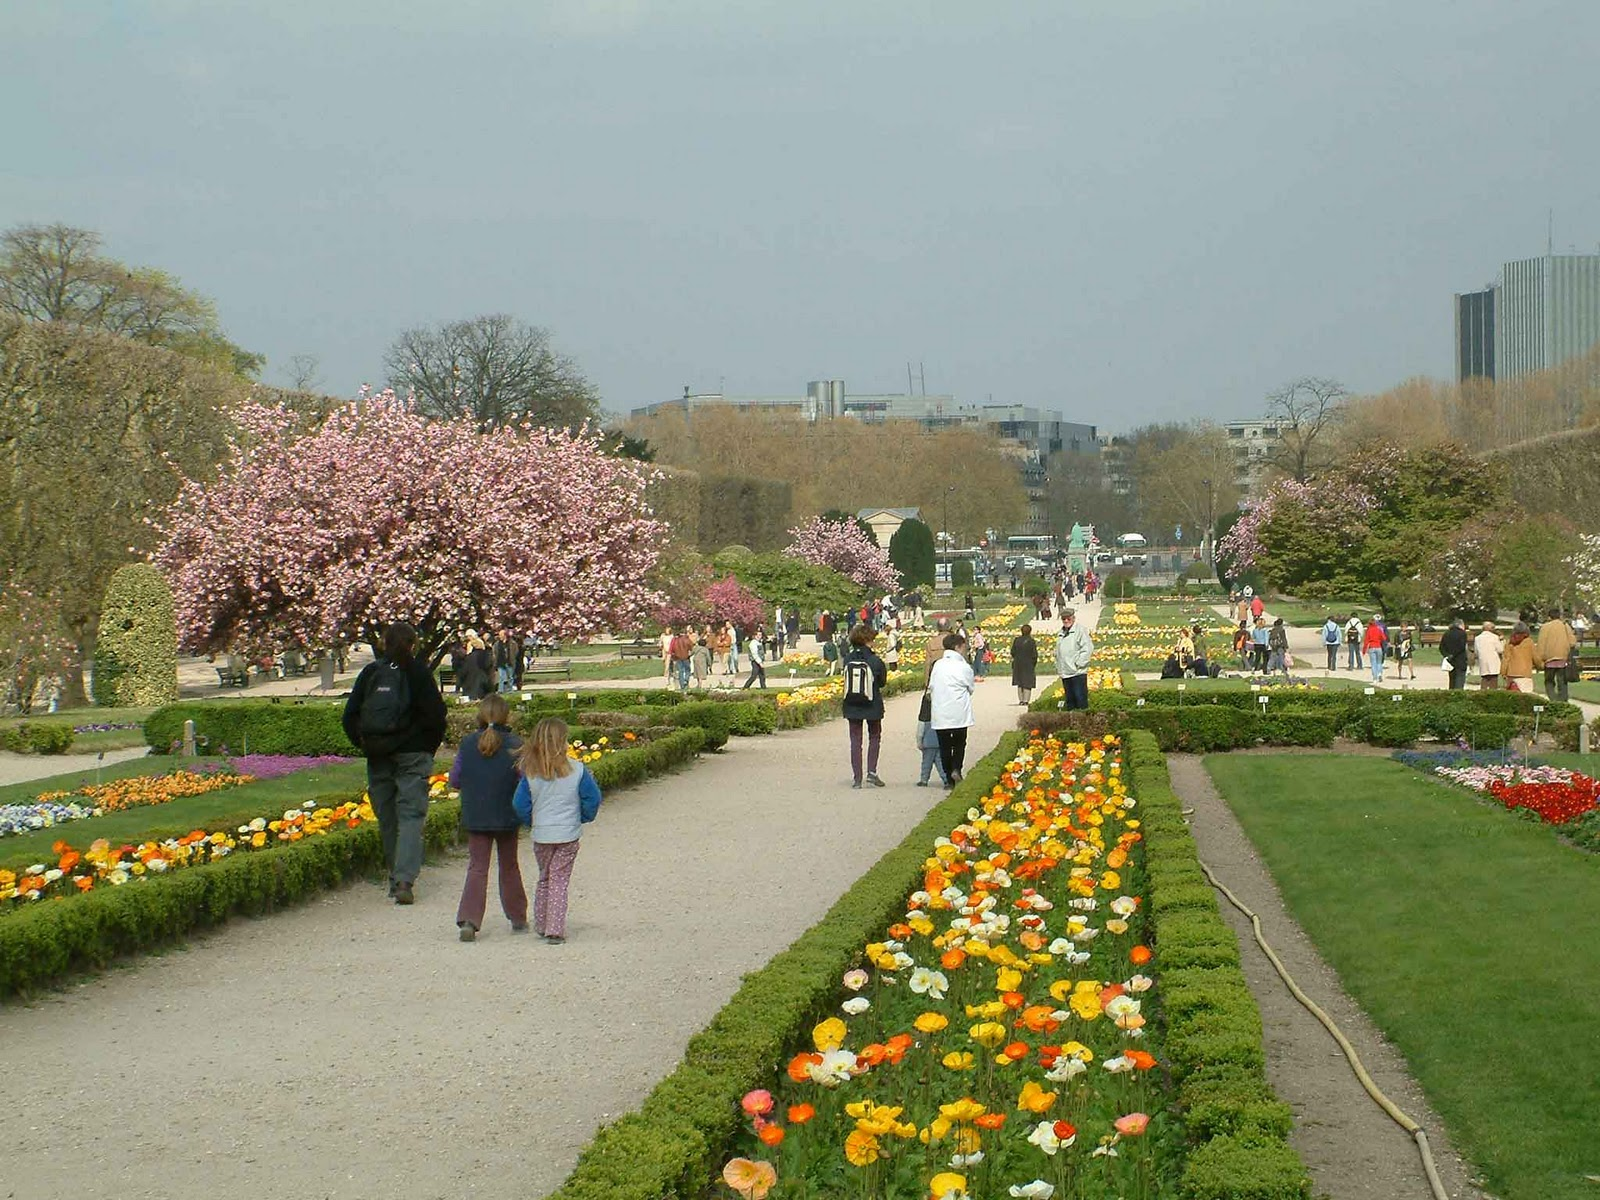 So if you are interested then please come to this park for Paris jardin plantes